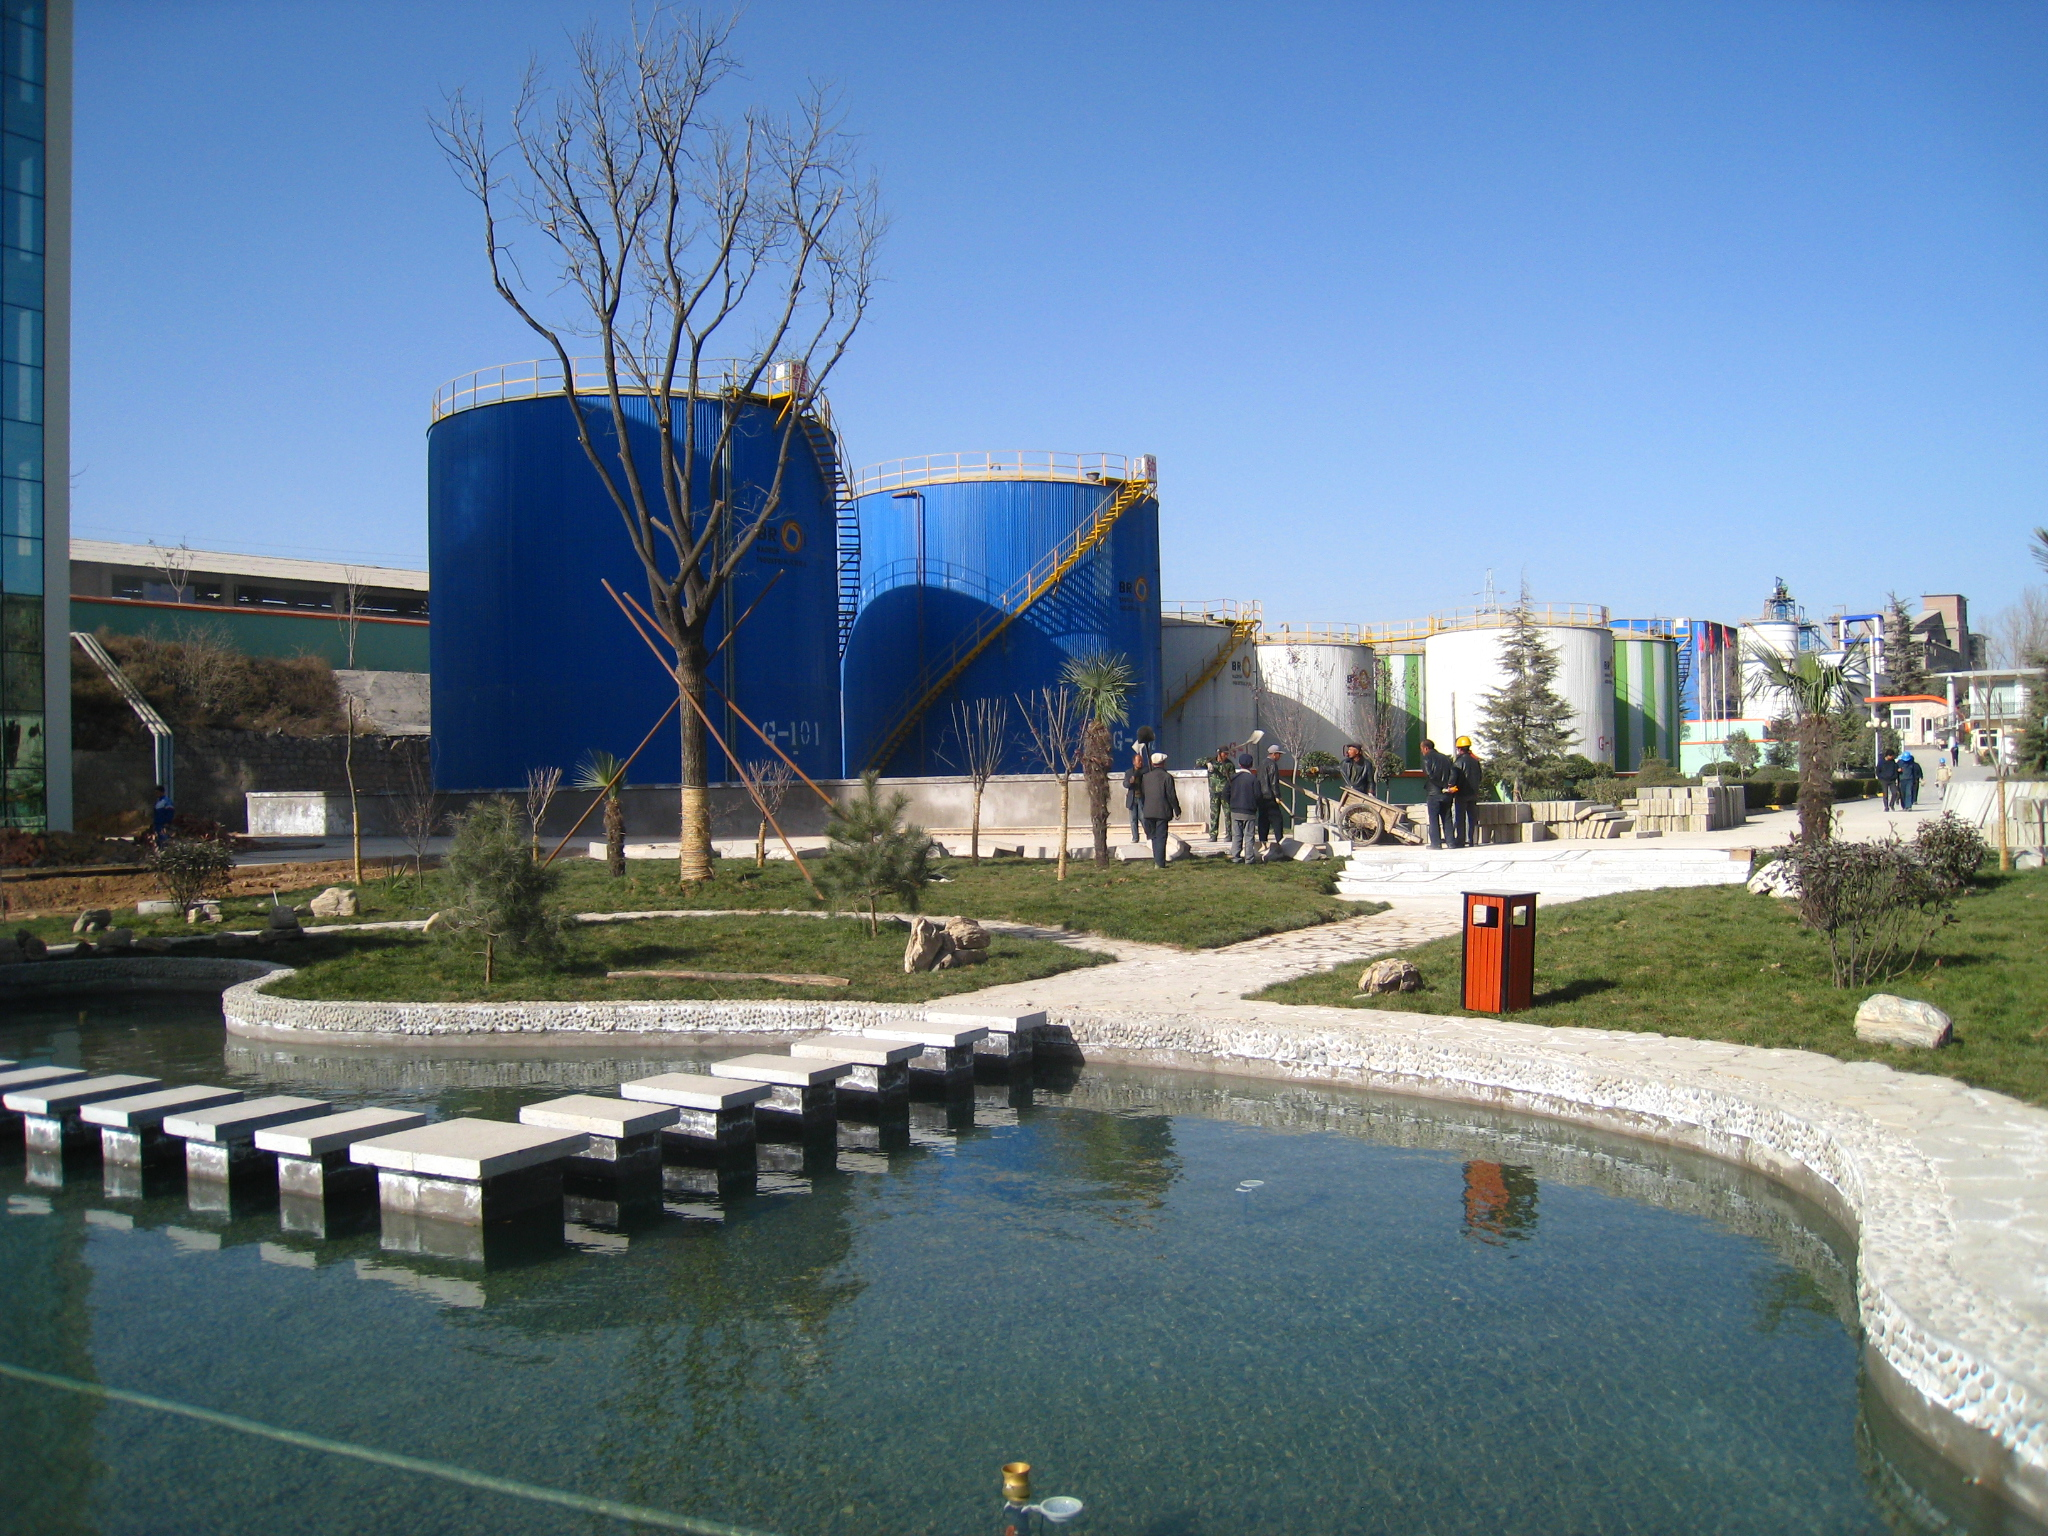 http://a.eqcdn.com/chinaintegratedenergyinc/files/pages/business-units/biodiesel-production-sales/50k-tongchuan-city-biodiesel-facility/IMG_3307.JPG